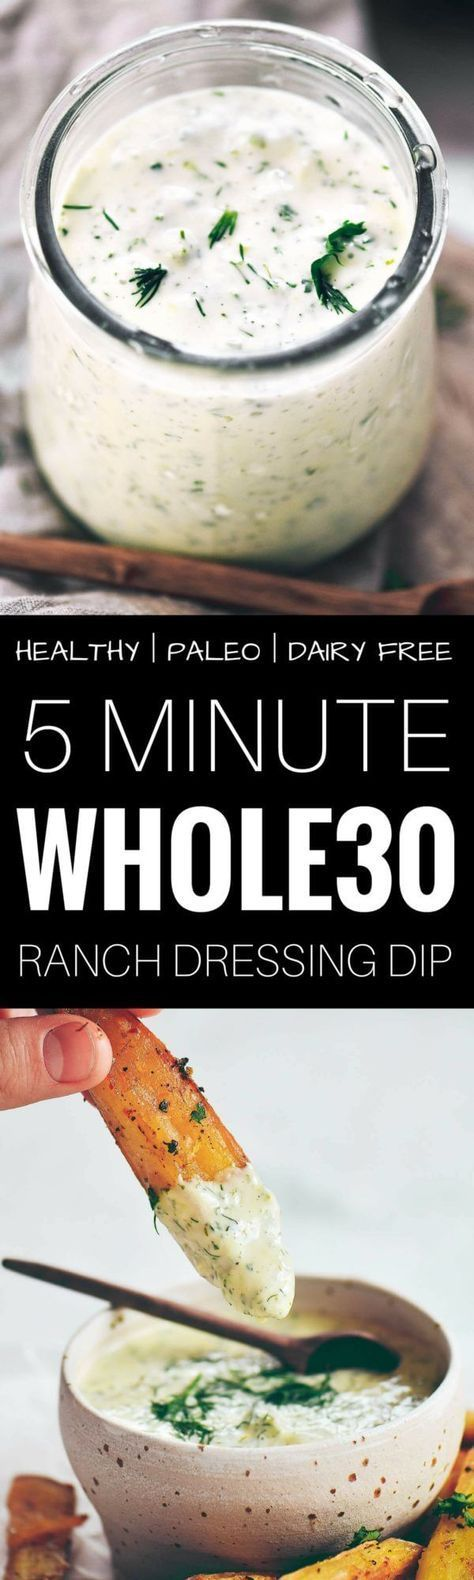 Easy 5 minute creamy ranch sauce is dairy free, whole30, paleo, and easy to make! Perfect for drizzling on salads or wraps and dipping veggies!